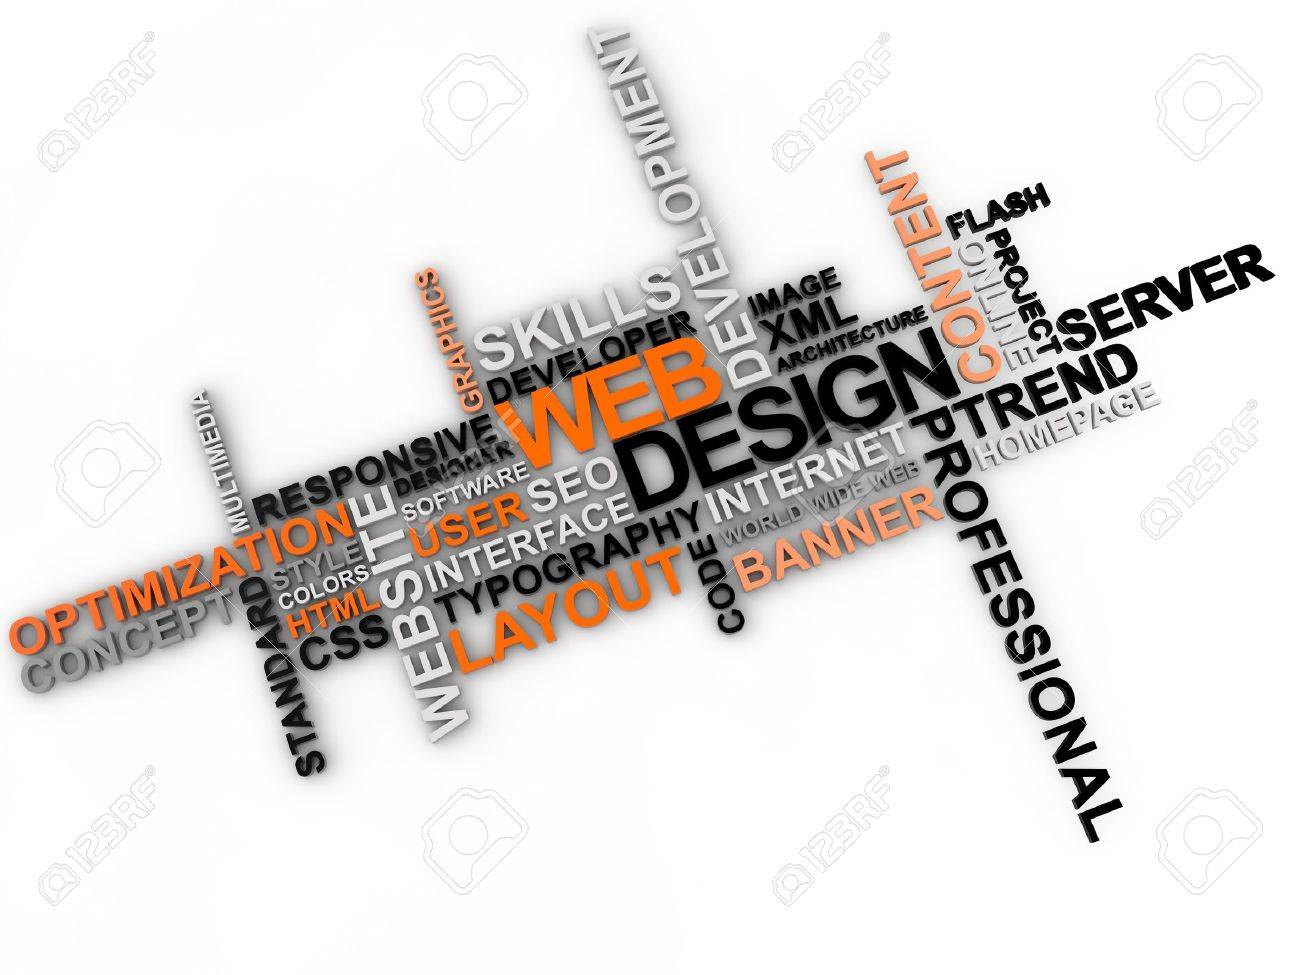 web design word cloud over white background Stock Photo - 19163638